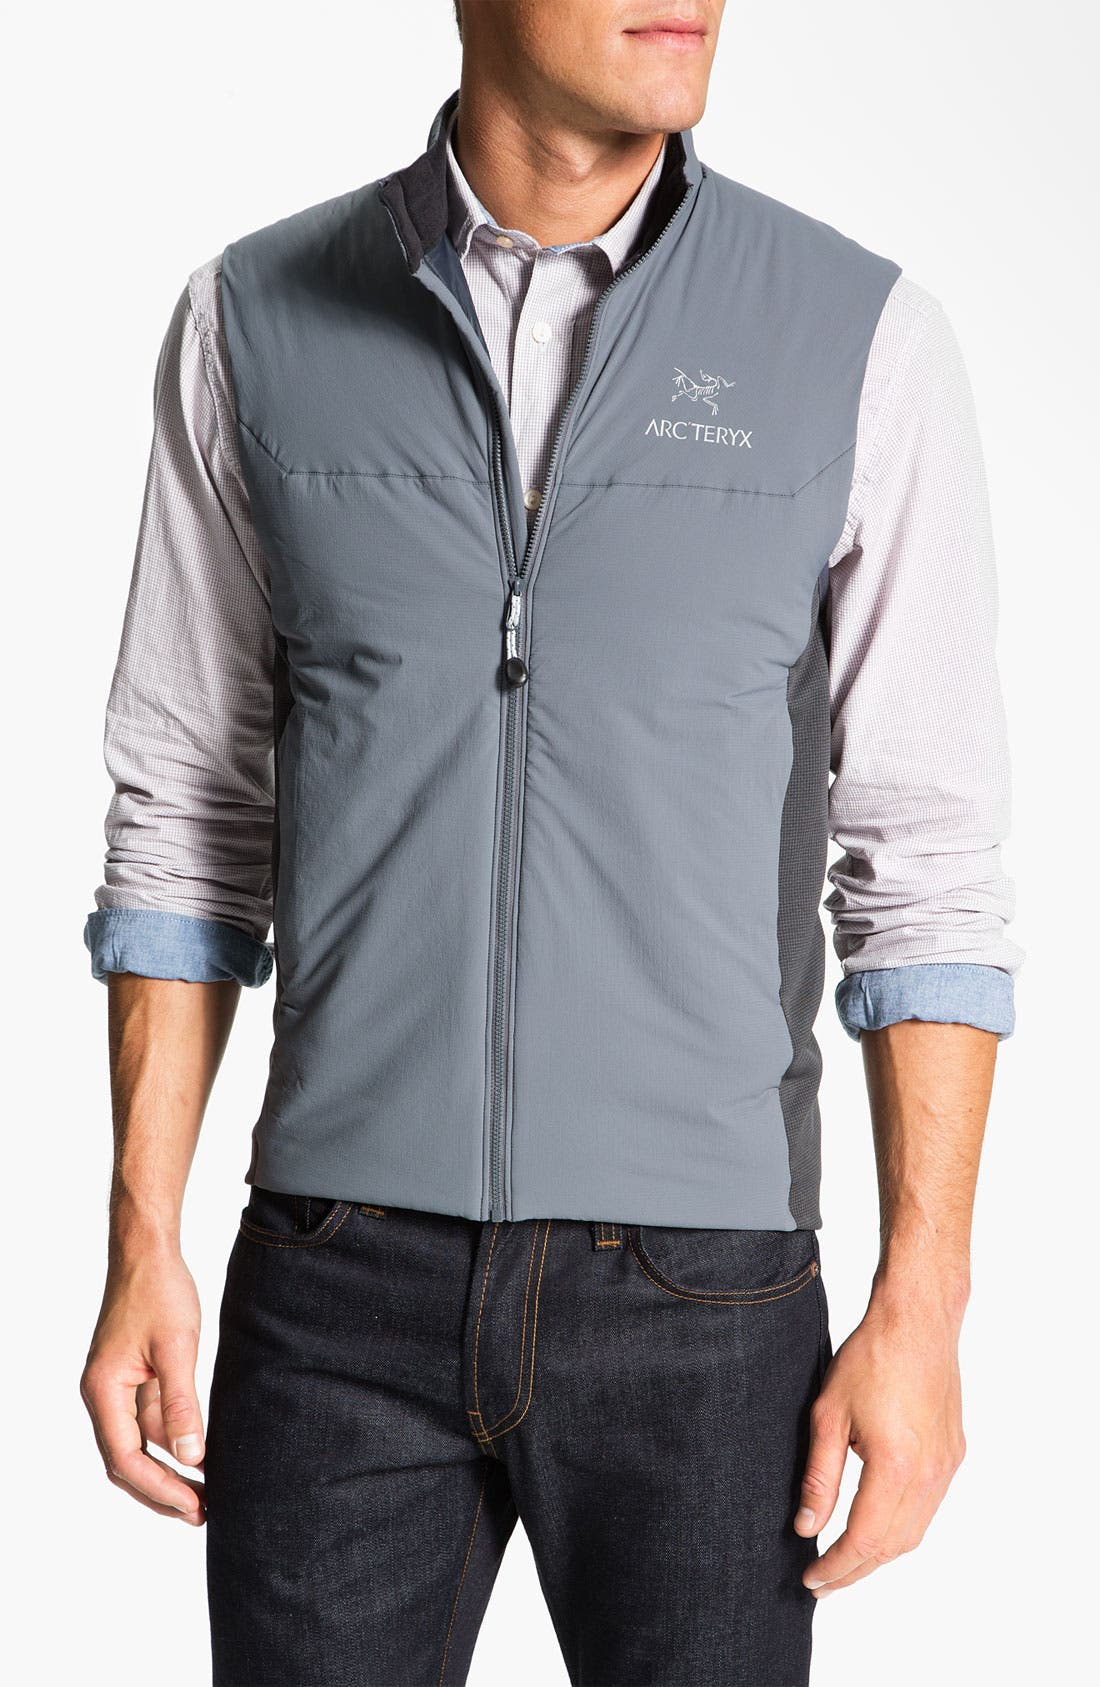 Alternate Image 1 Selected - Arc'teryx 'Atom LT' Vest